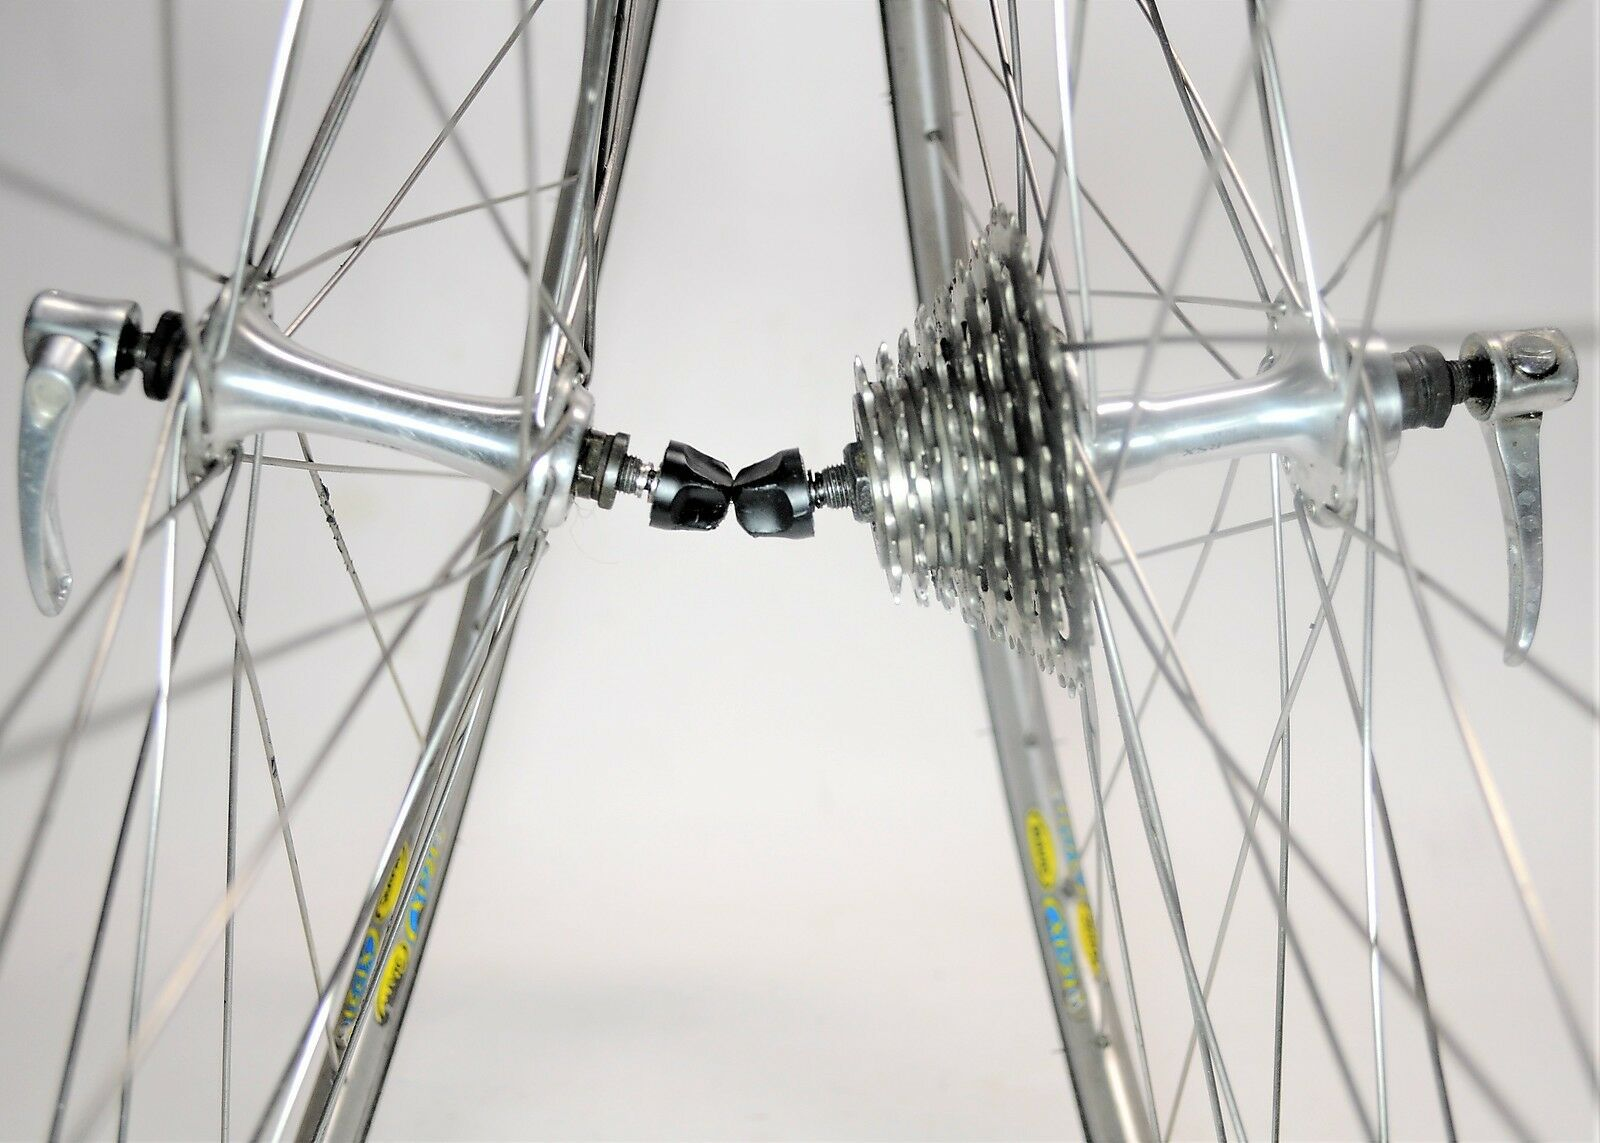 SHIMANO RSX A416 MAVIC CXP21 RACE LITE ROAD BICYCLE 8 SPEED 700c WHEELSET 130MM